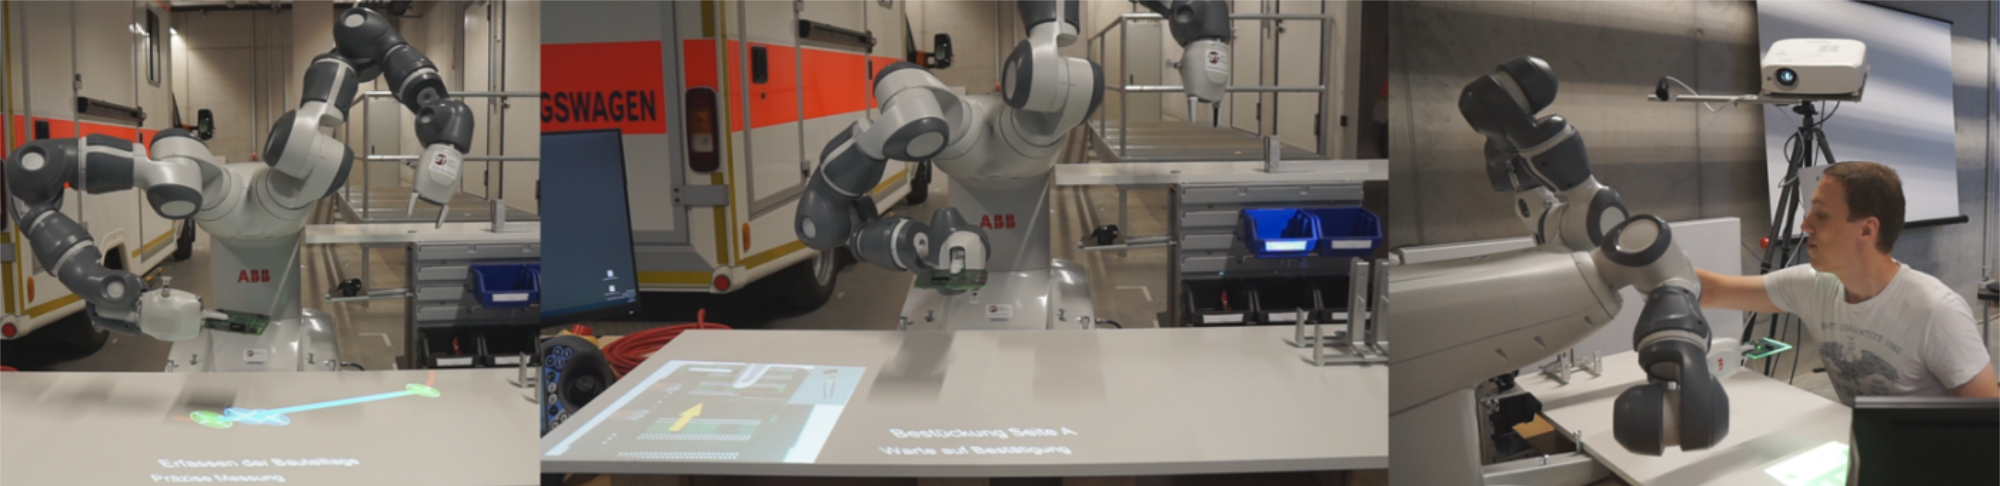 Spatial Augmented Reality und kollaborative Robotik